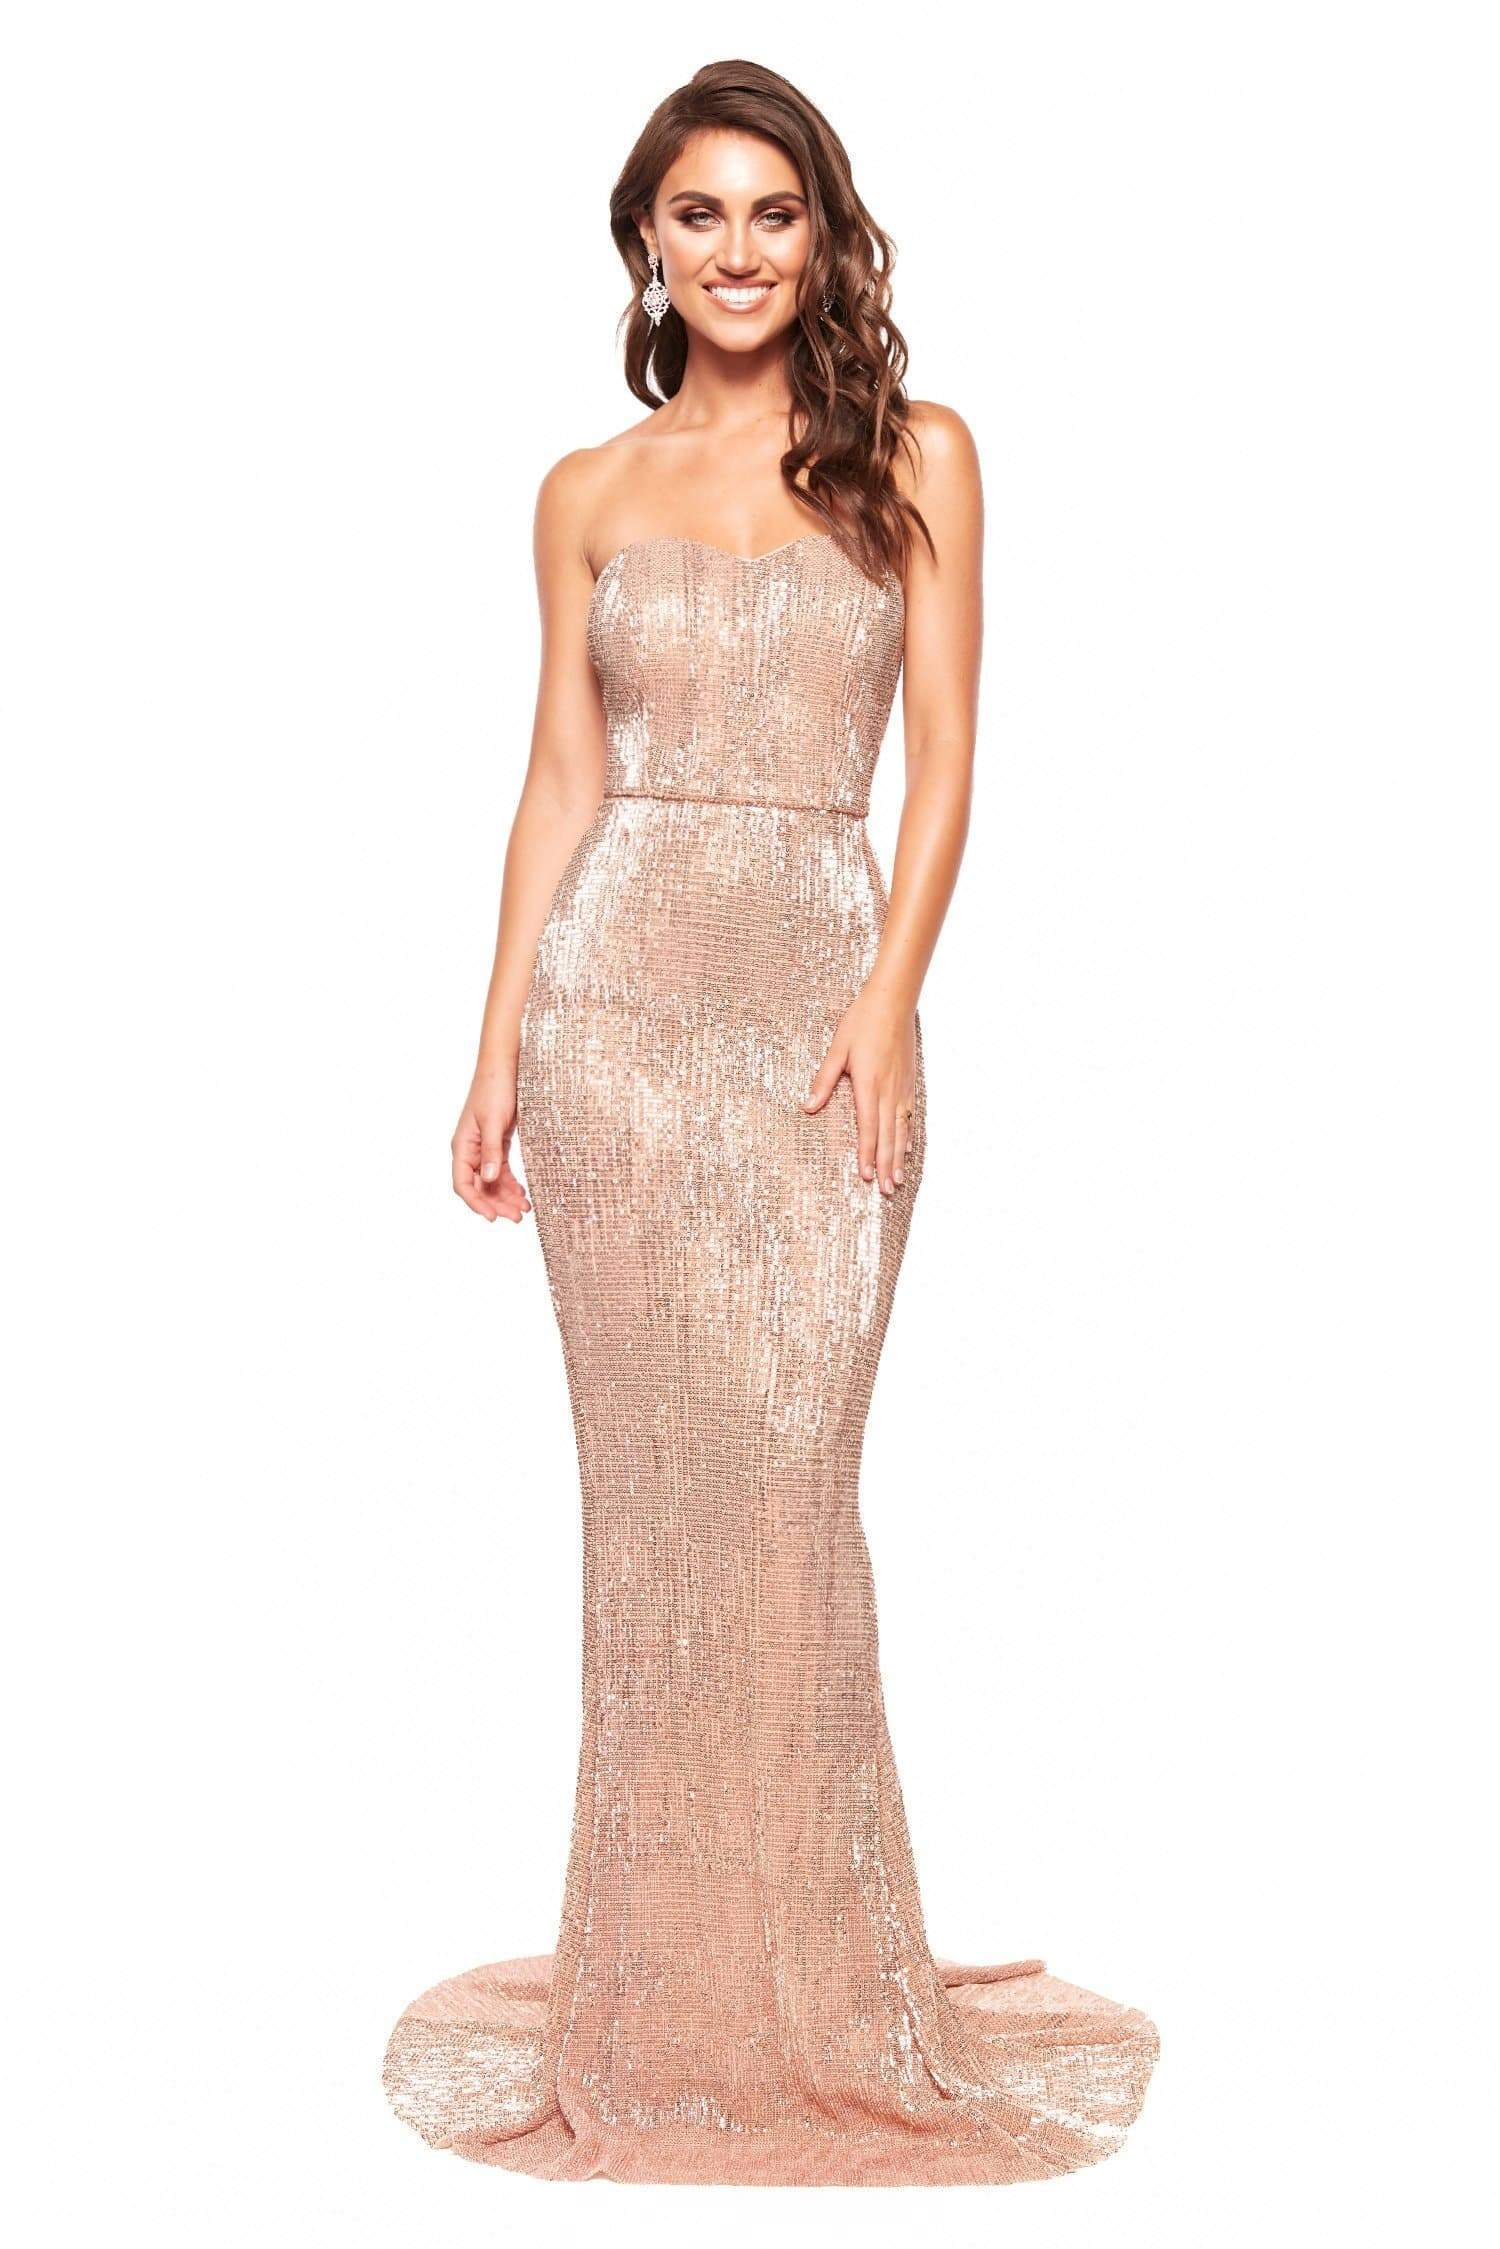 A&N Chloe - Rose Gold Strapless Sequin Gown with Mermaid Silhouette